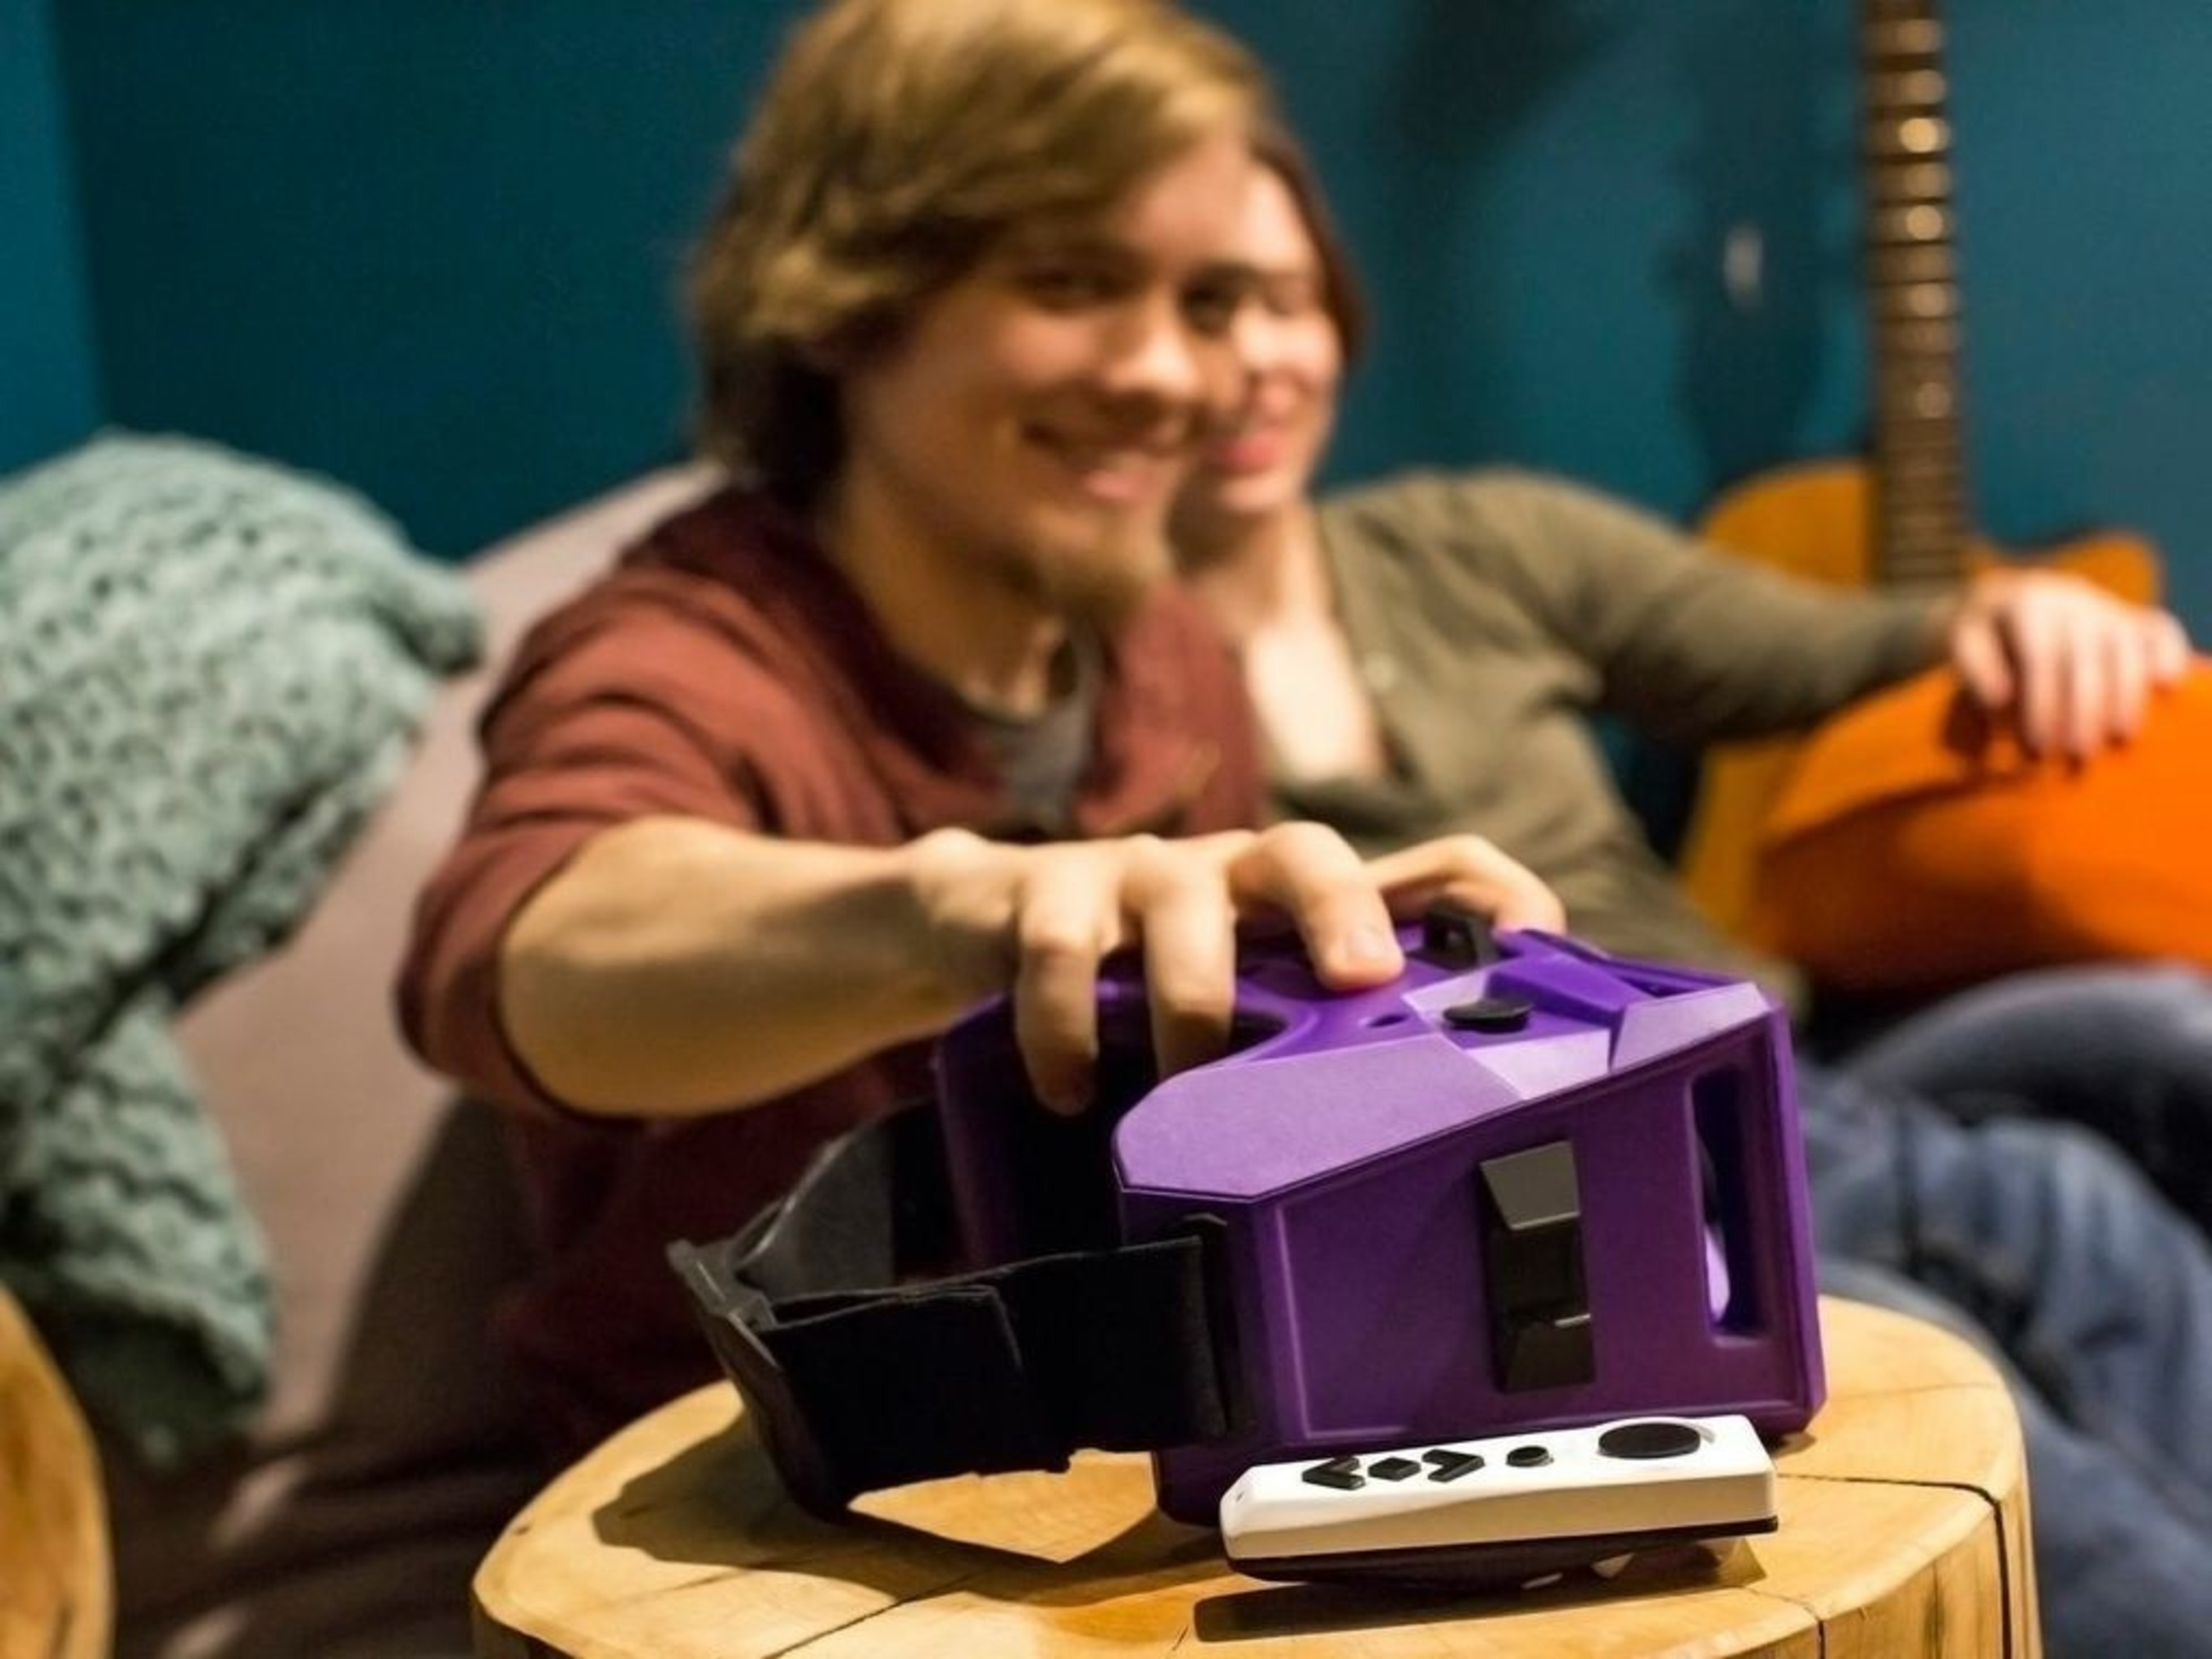 MergeVR virtual reality goggles and motion controller launching fall 2015. (instagram.com/Merge.VR)